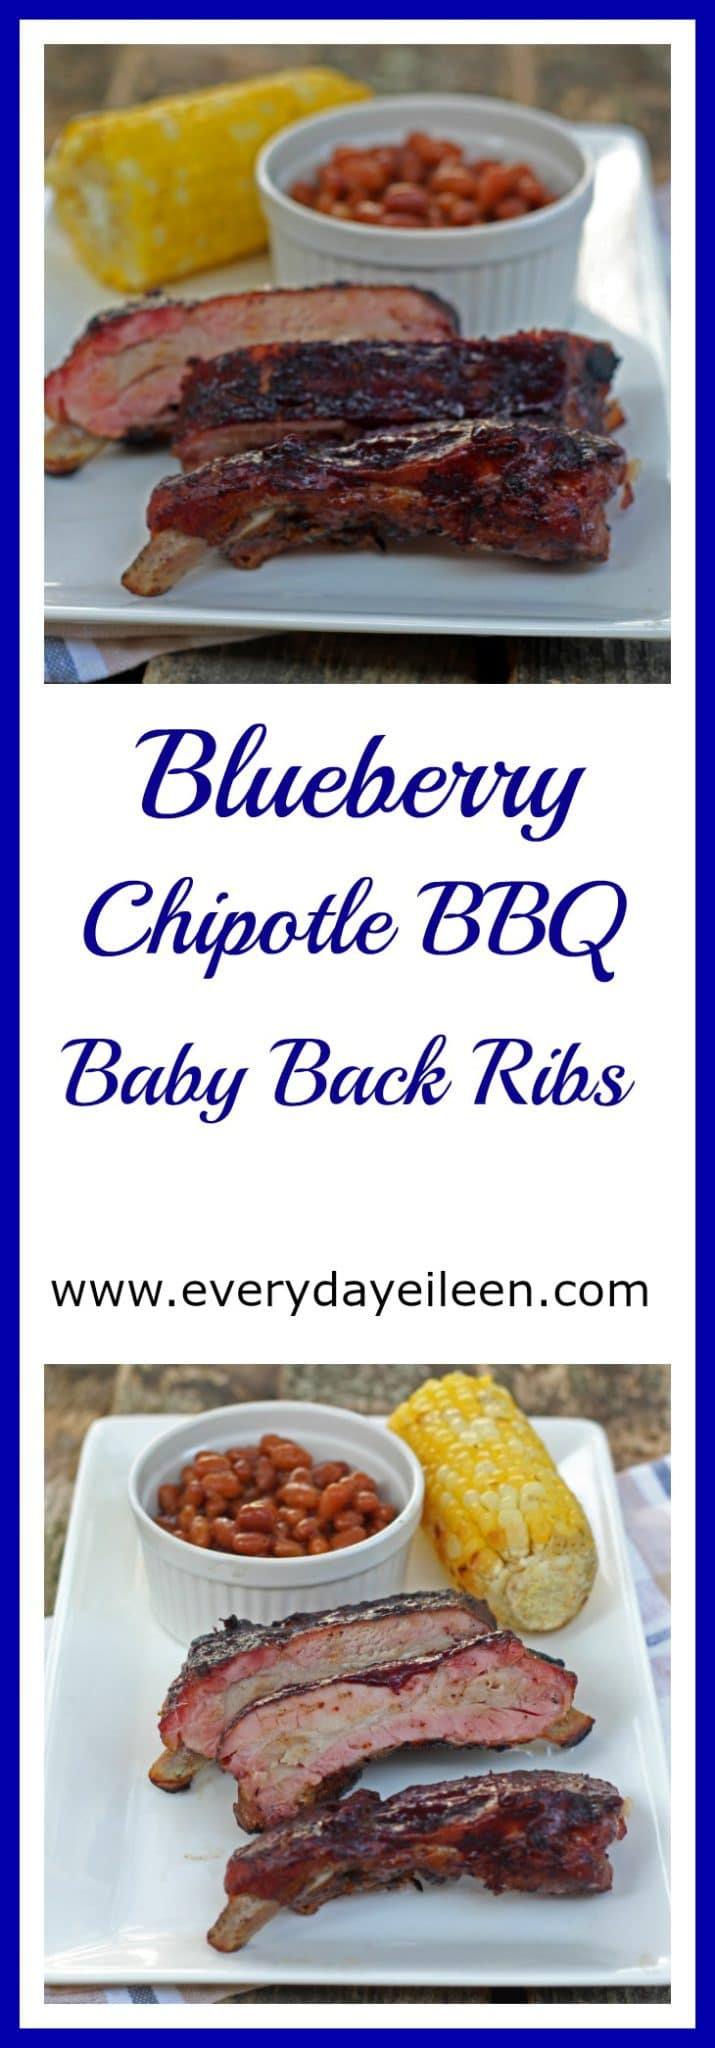 Blueberry Chipotle BBQ Babyback Ribs